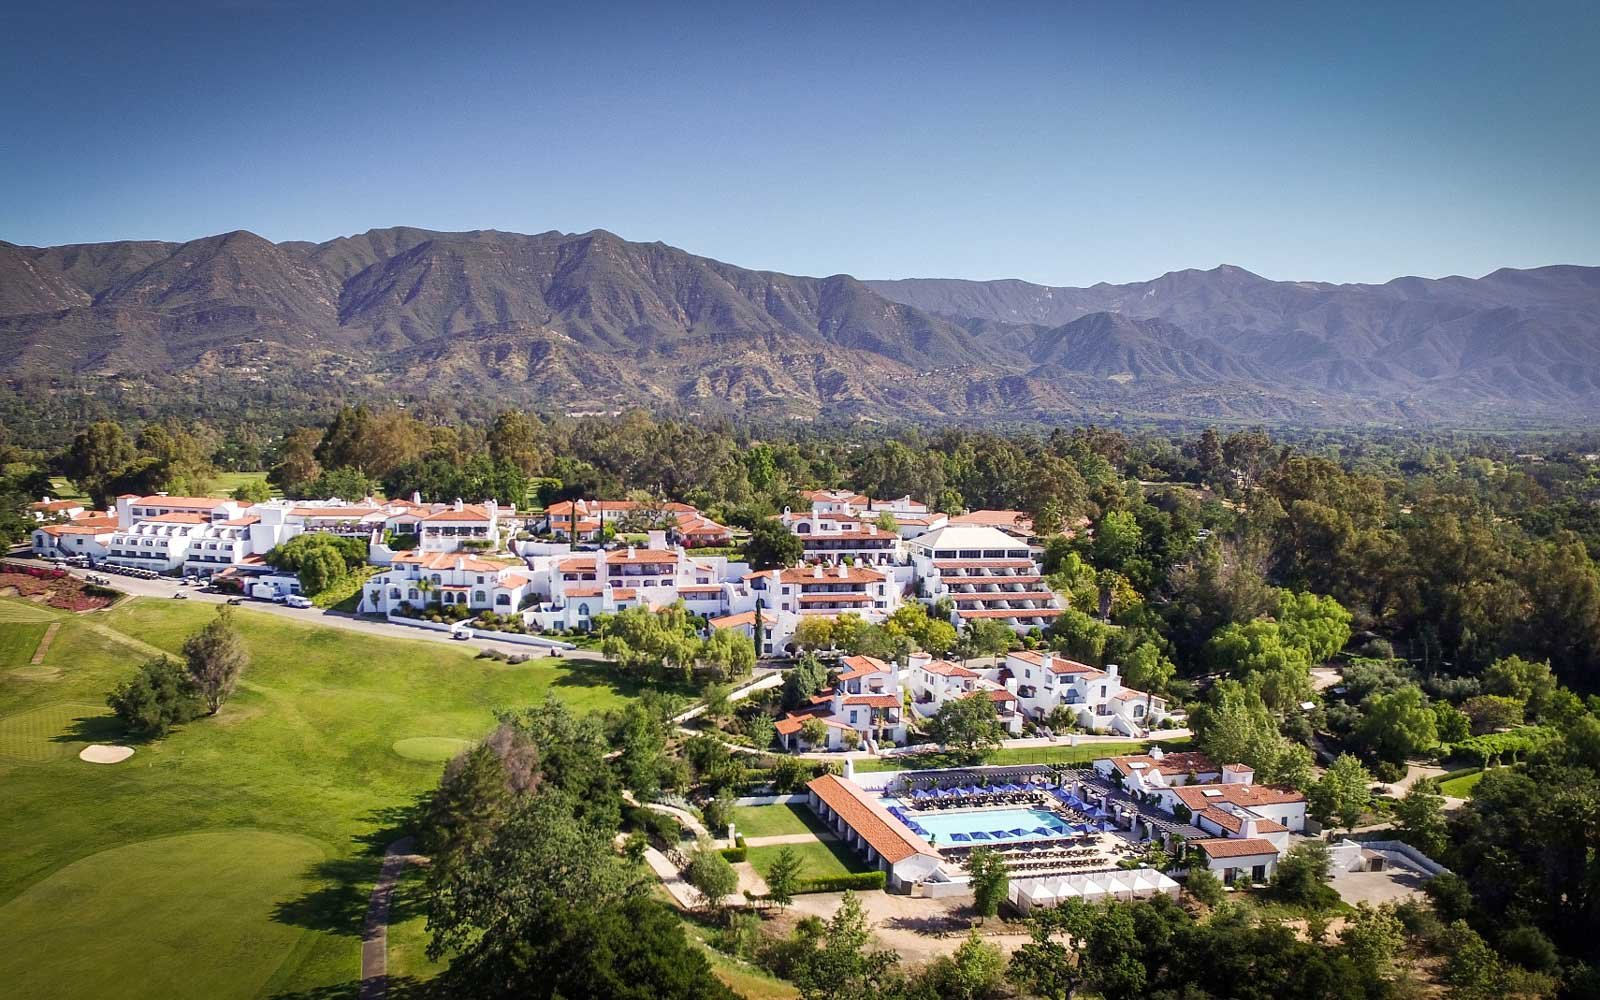 Ojai Valley Inn & Spa Resort Hotel in California